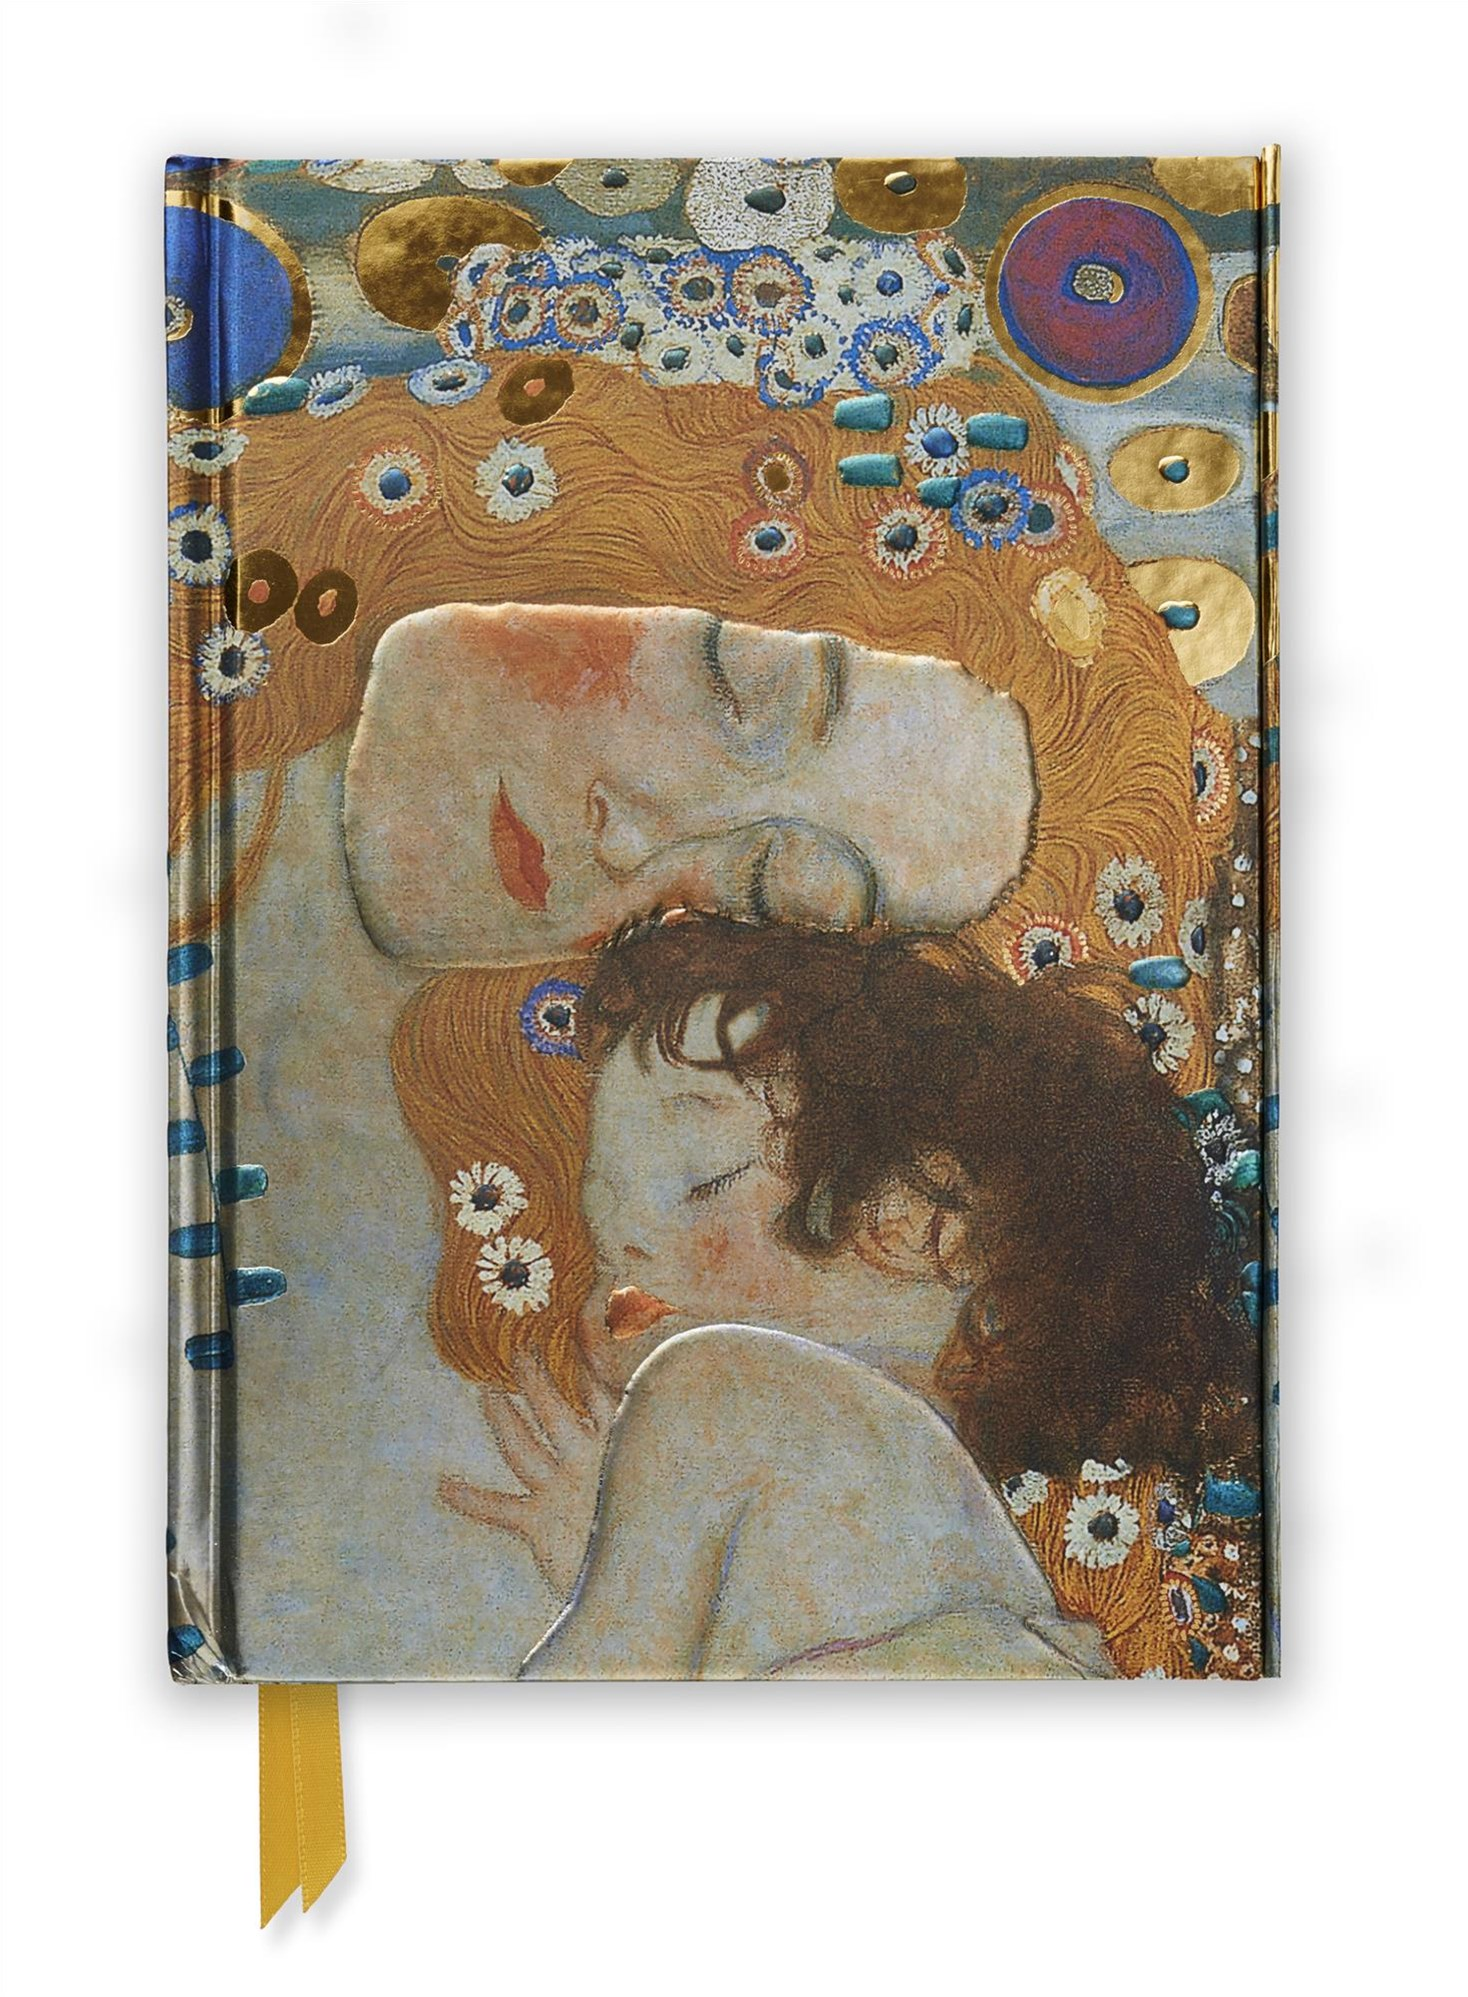 Foiled Journal #04: Klimt Mother and Child/Three Ages of Woman